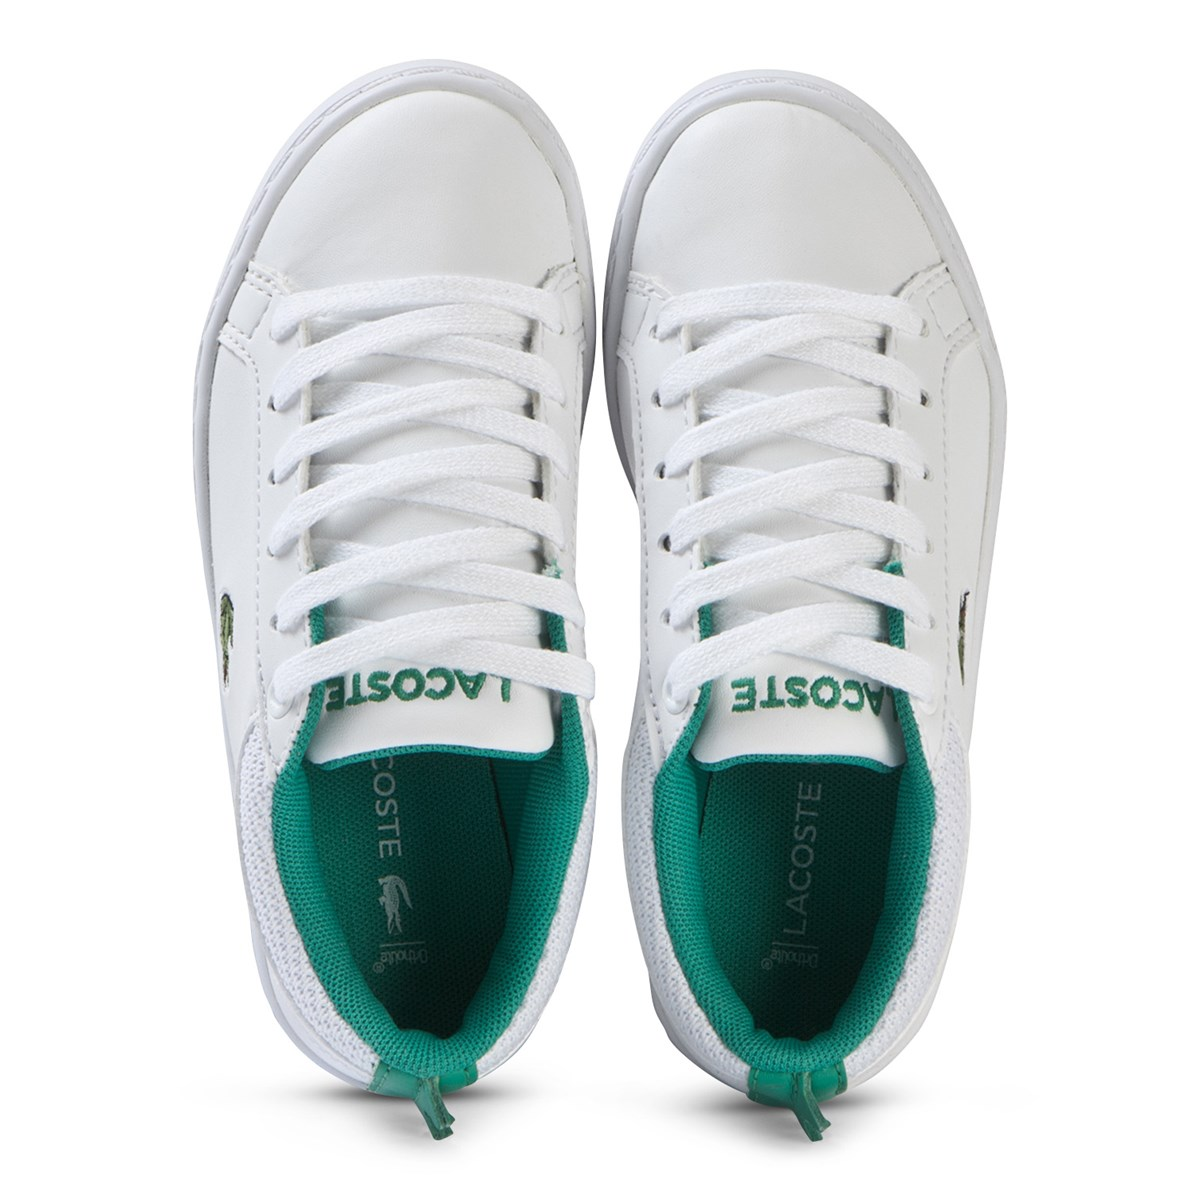 271b9b29a652 Lacoste - White with Green Crocodile Spine Straightset 119 Shoes -  Babyshop.com